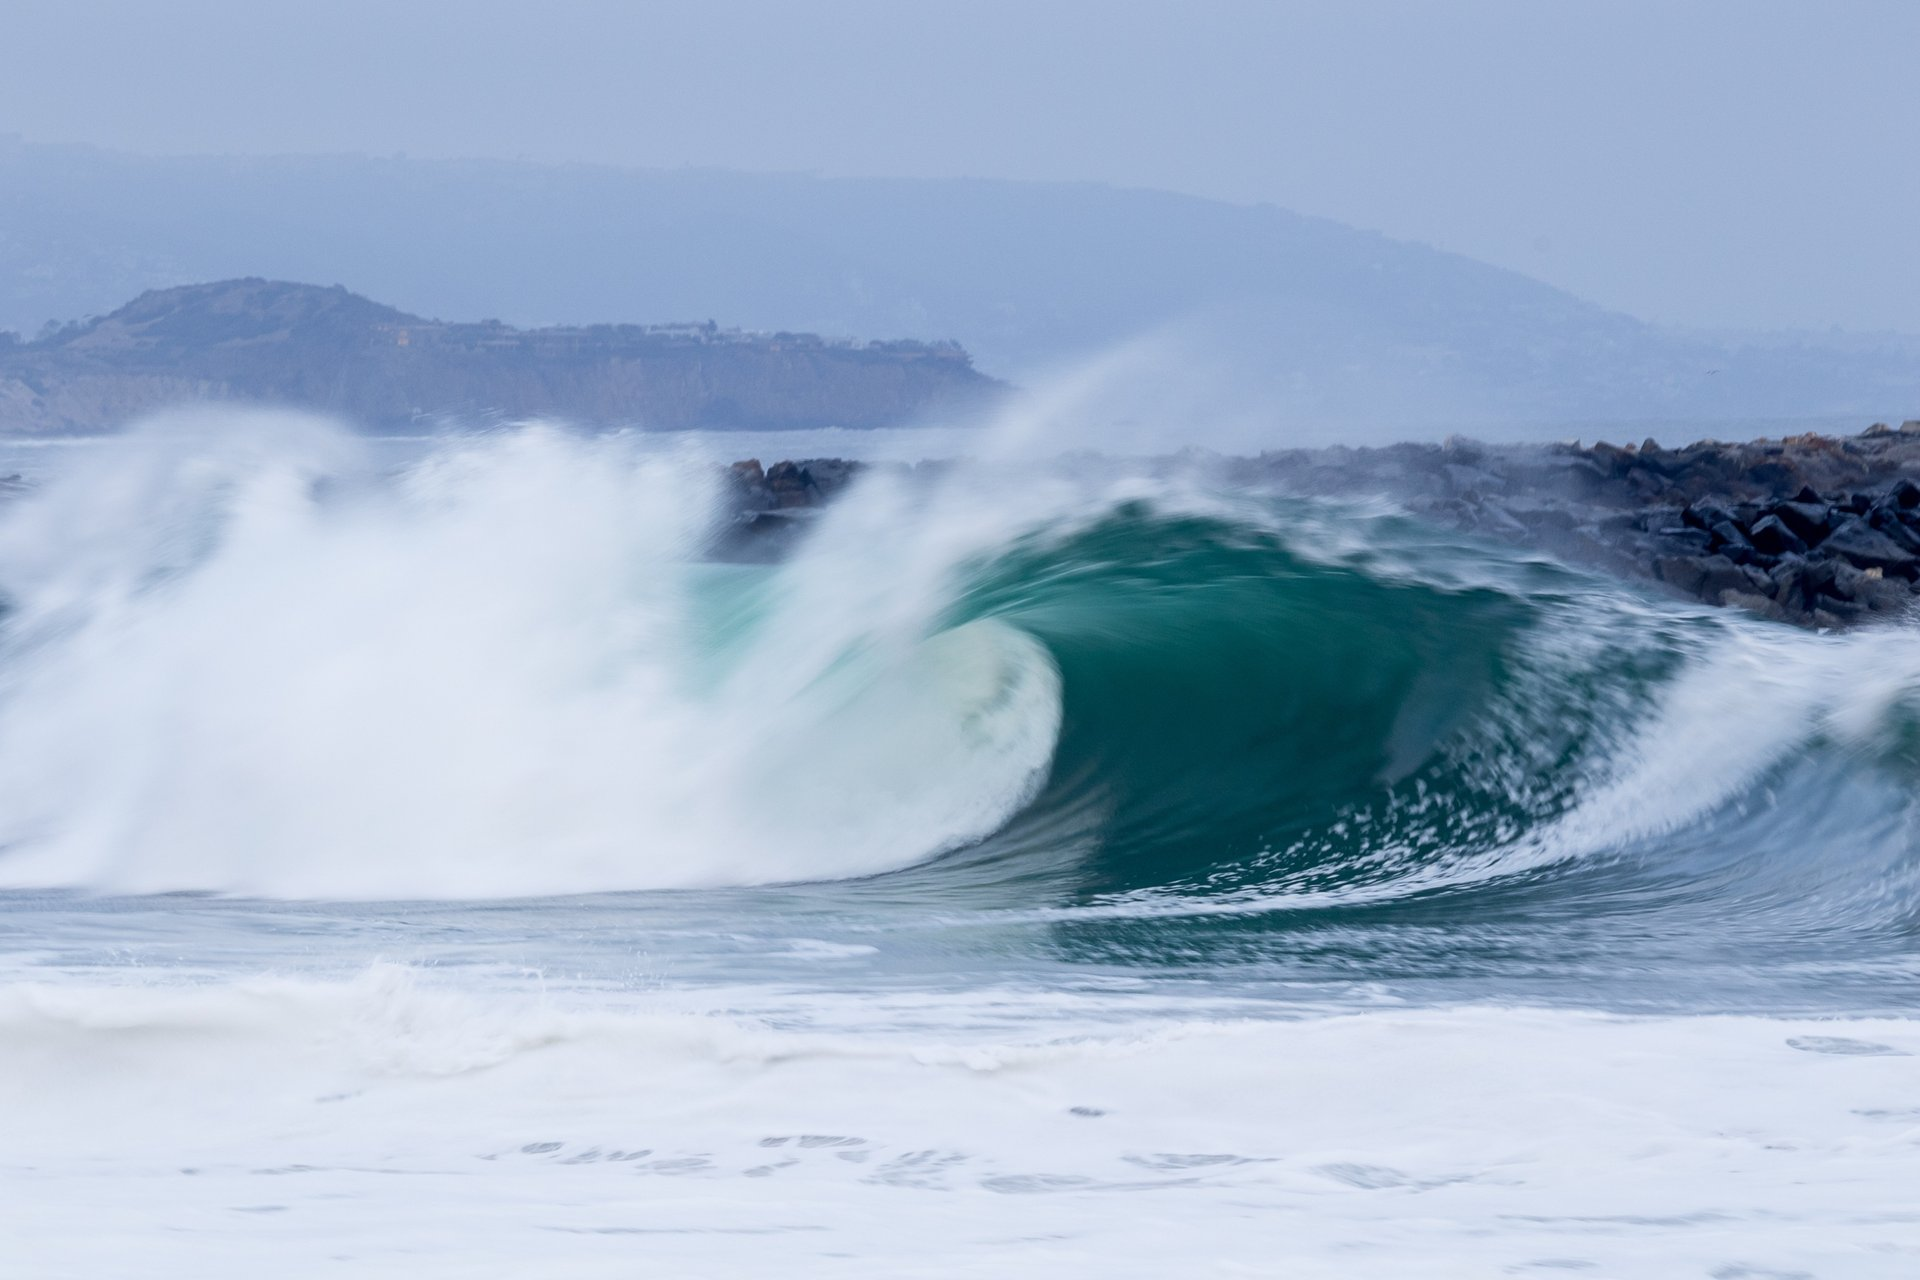 Dukelawson's photo of The Wedge